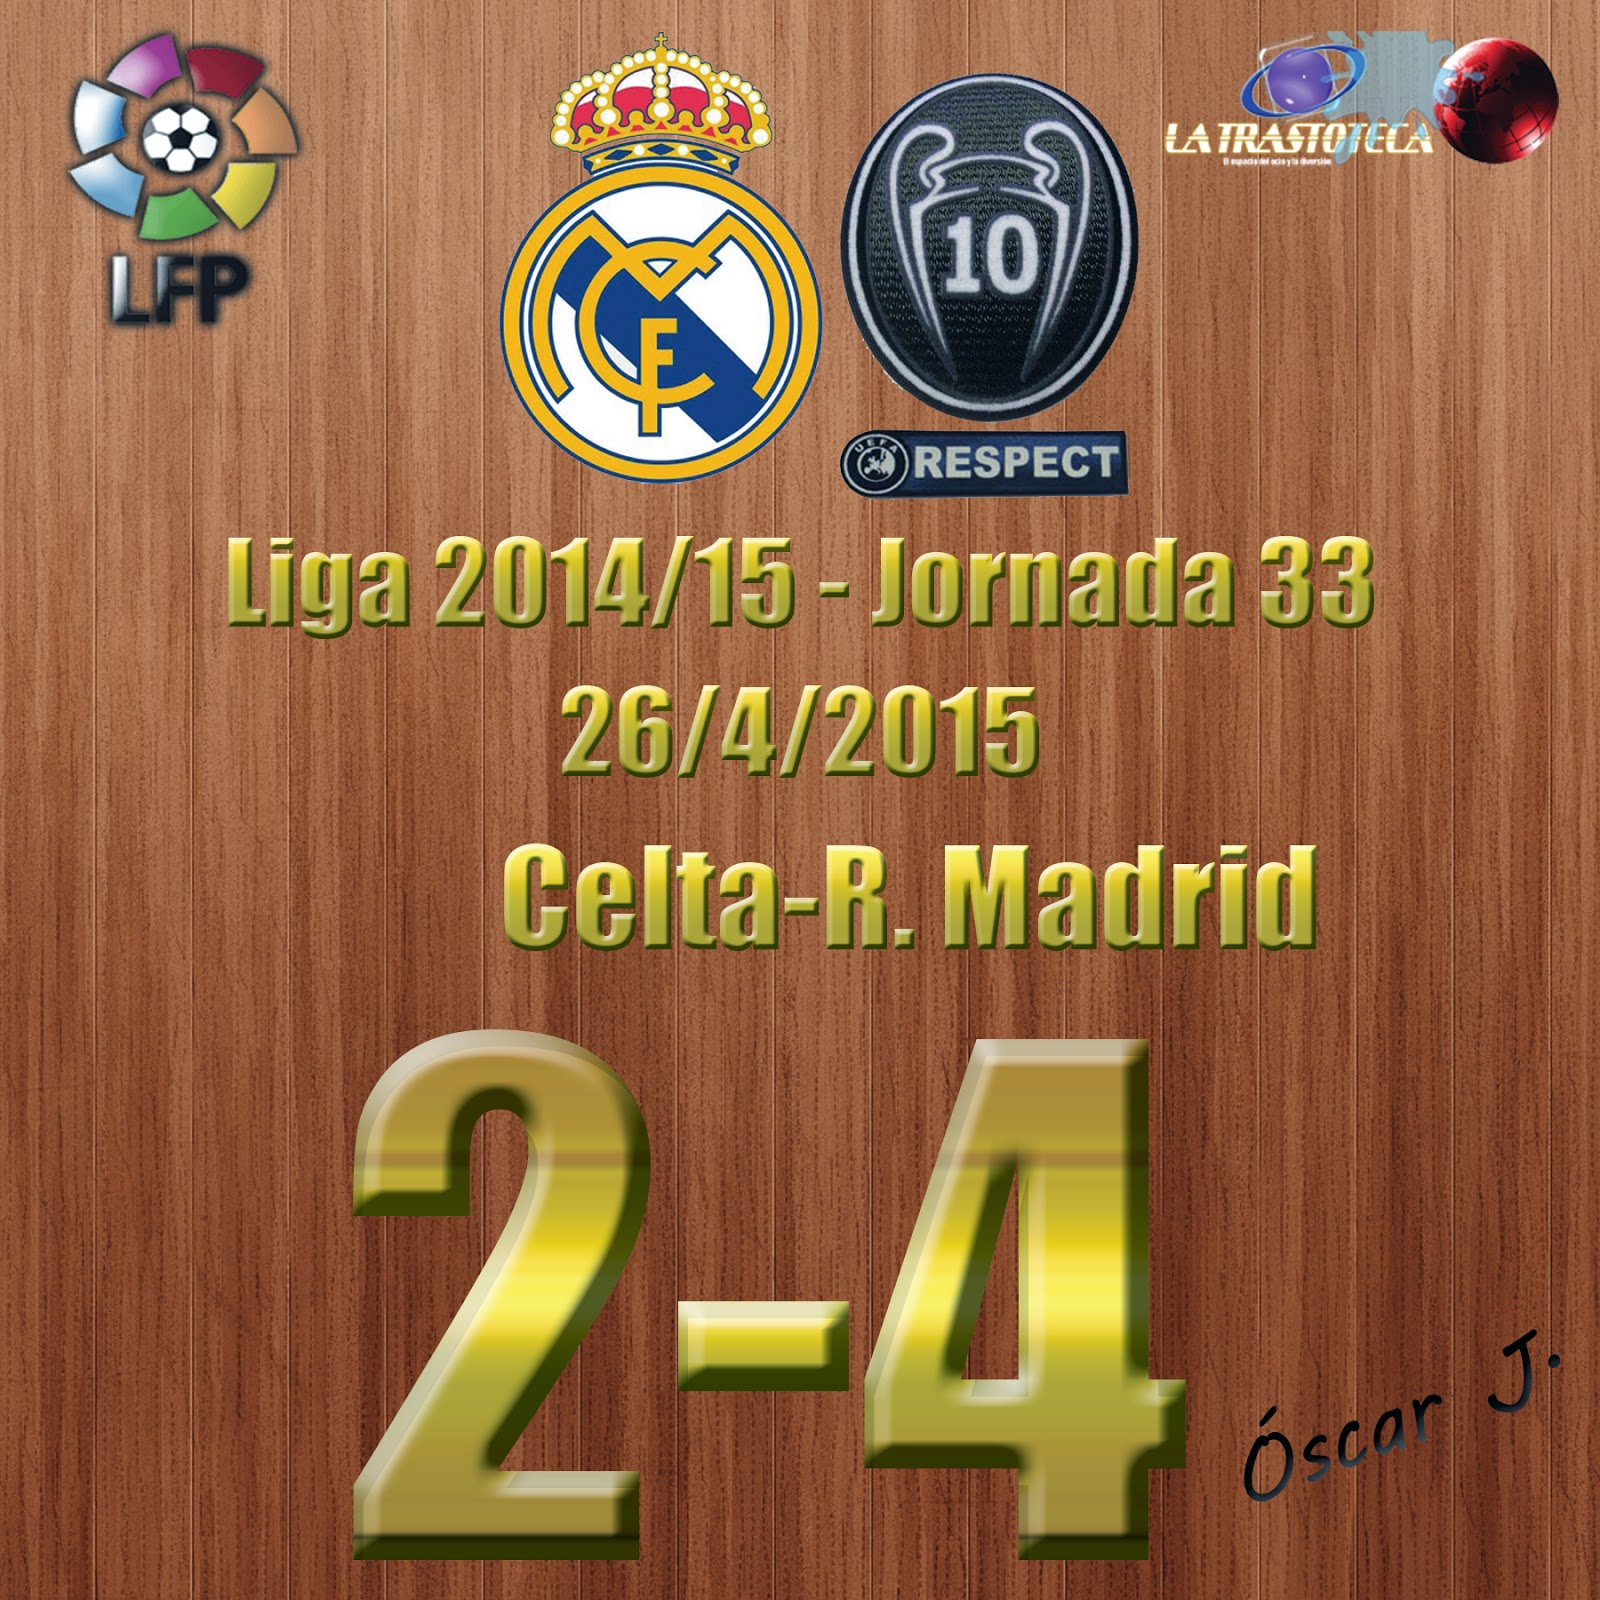 Kroos (1-1) - Celta 2-4 Real Madrid - Liga 2014/15 - Jornada 33 - (26/4/2015)